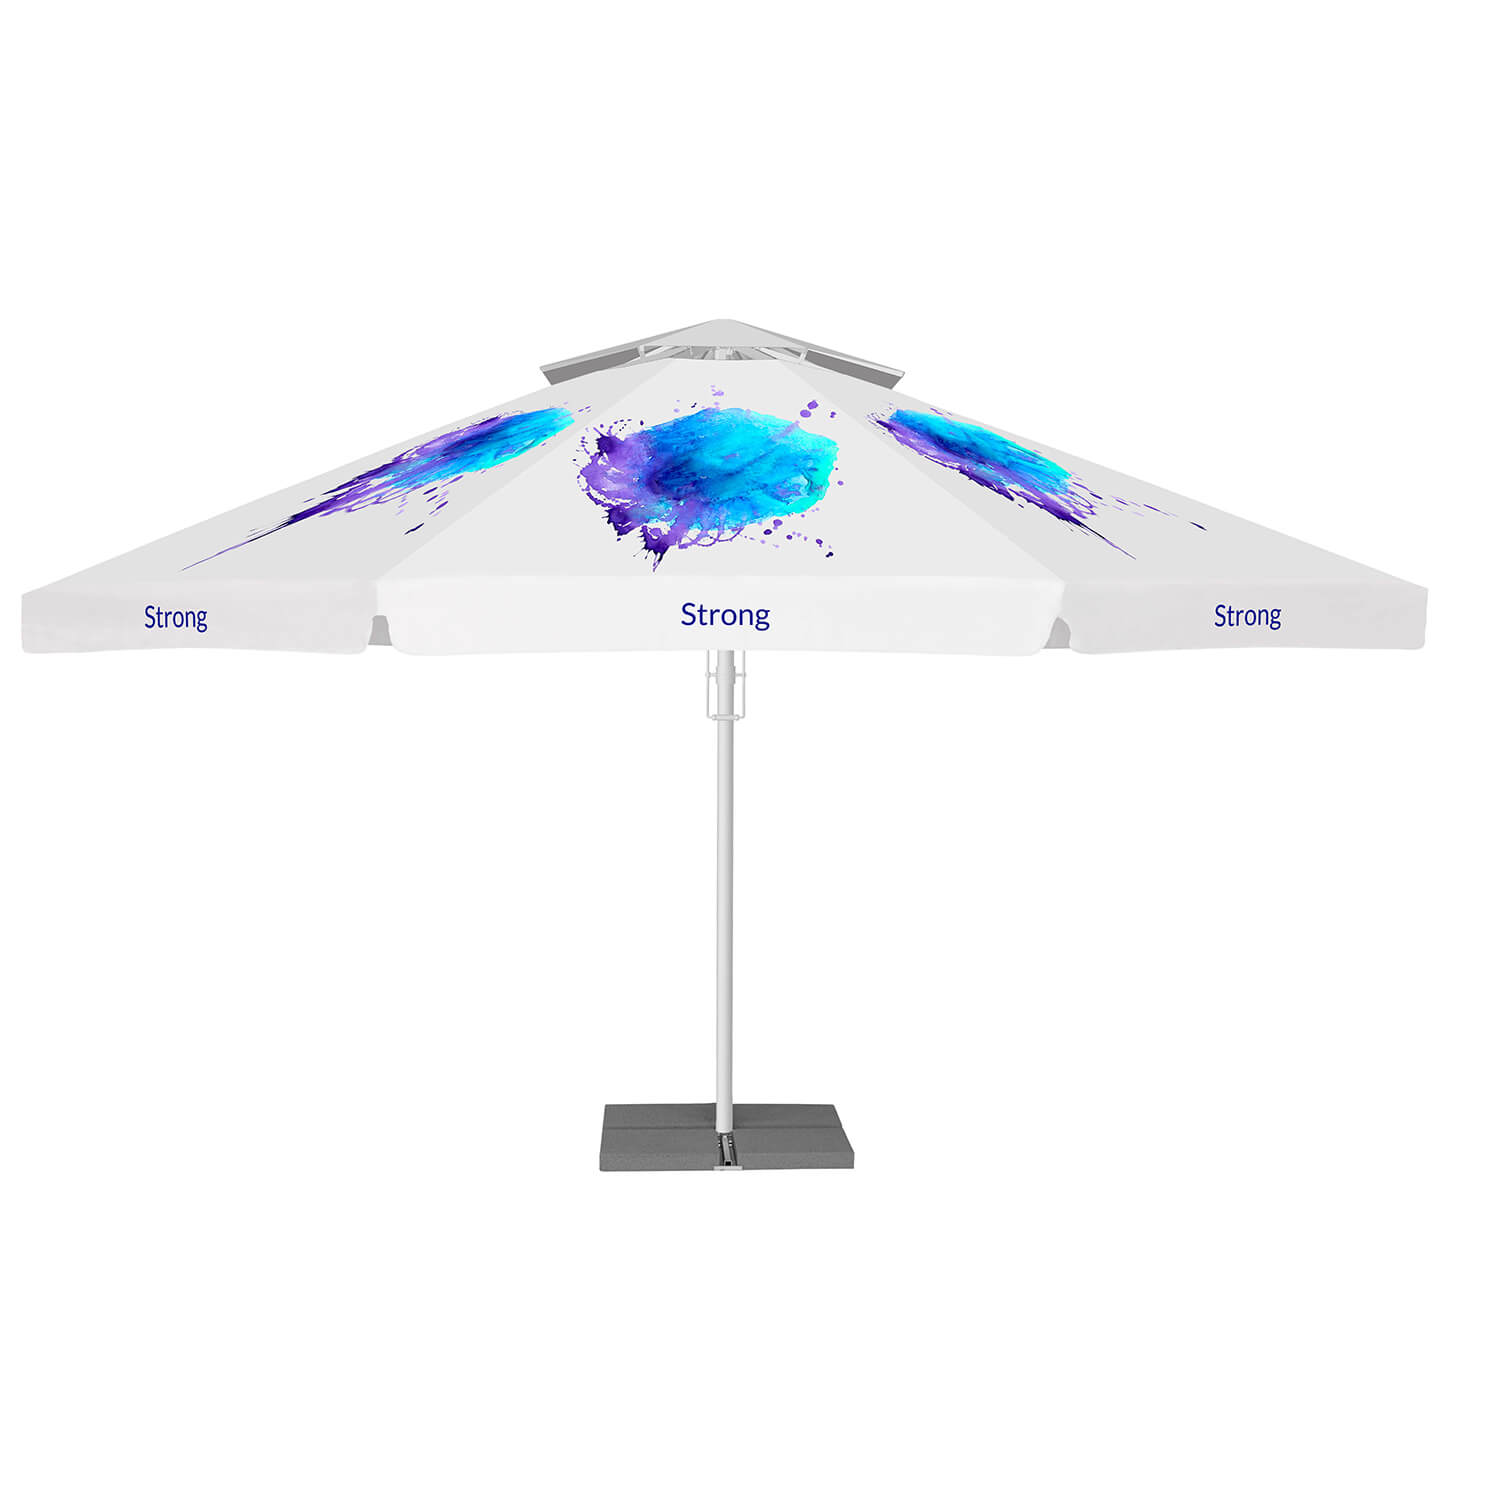 4. Strong line parasols